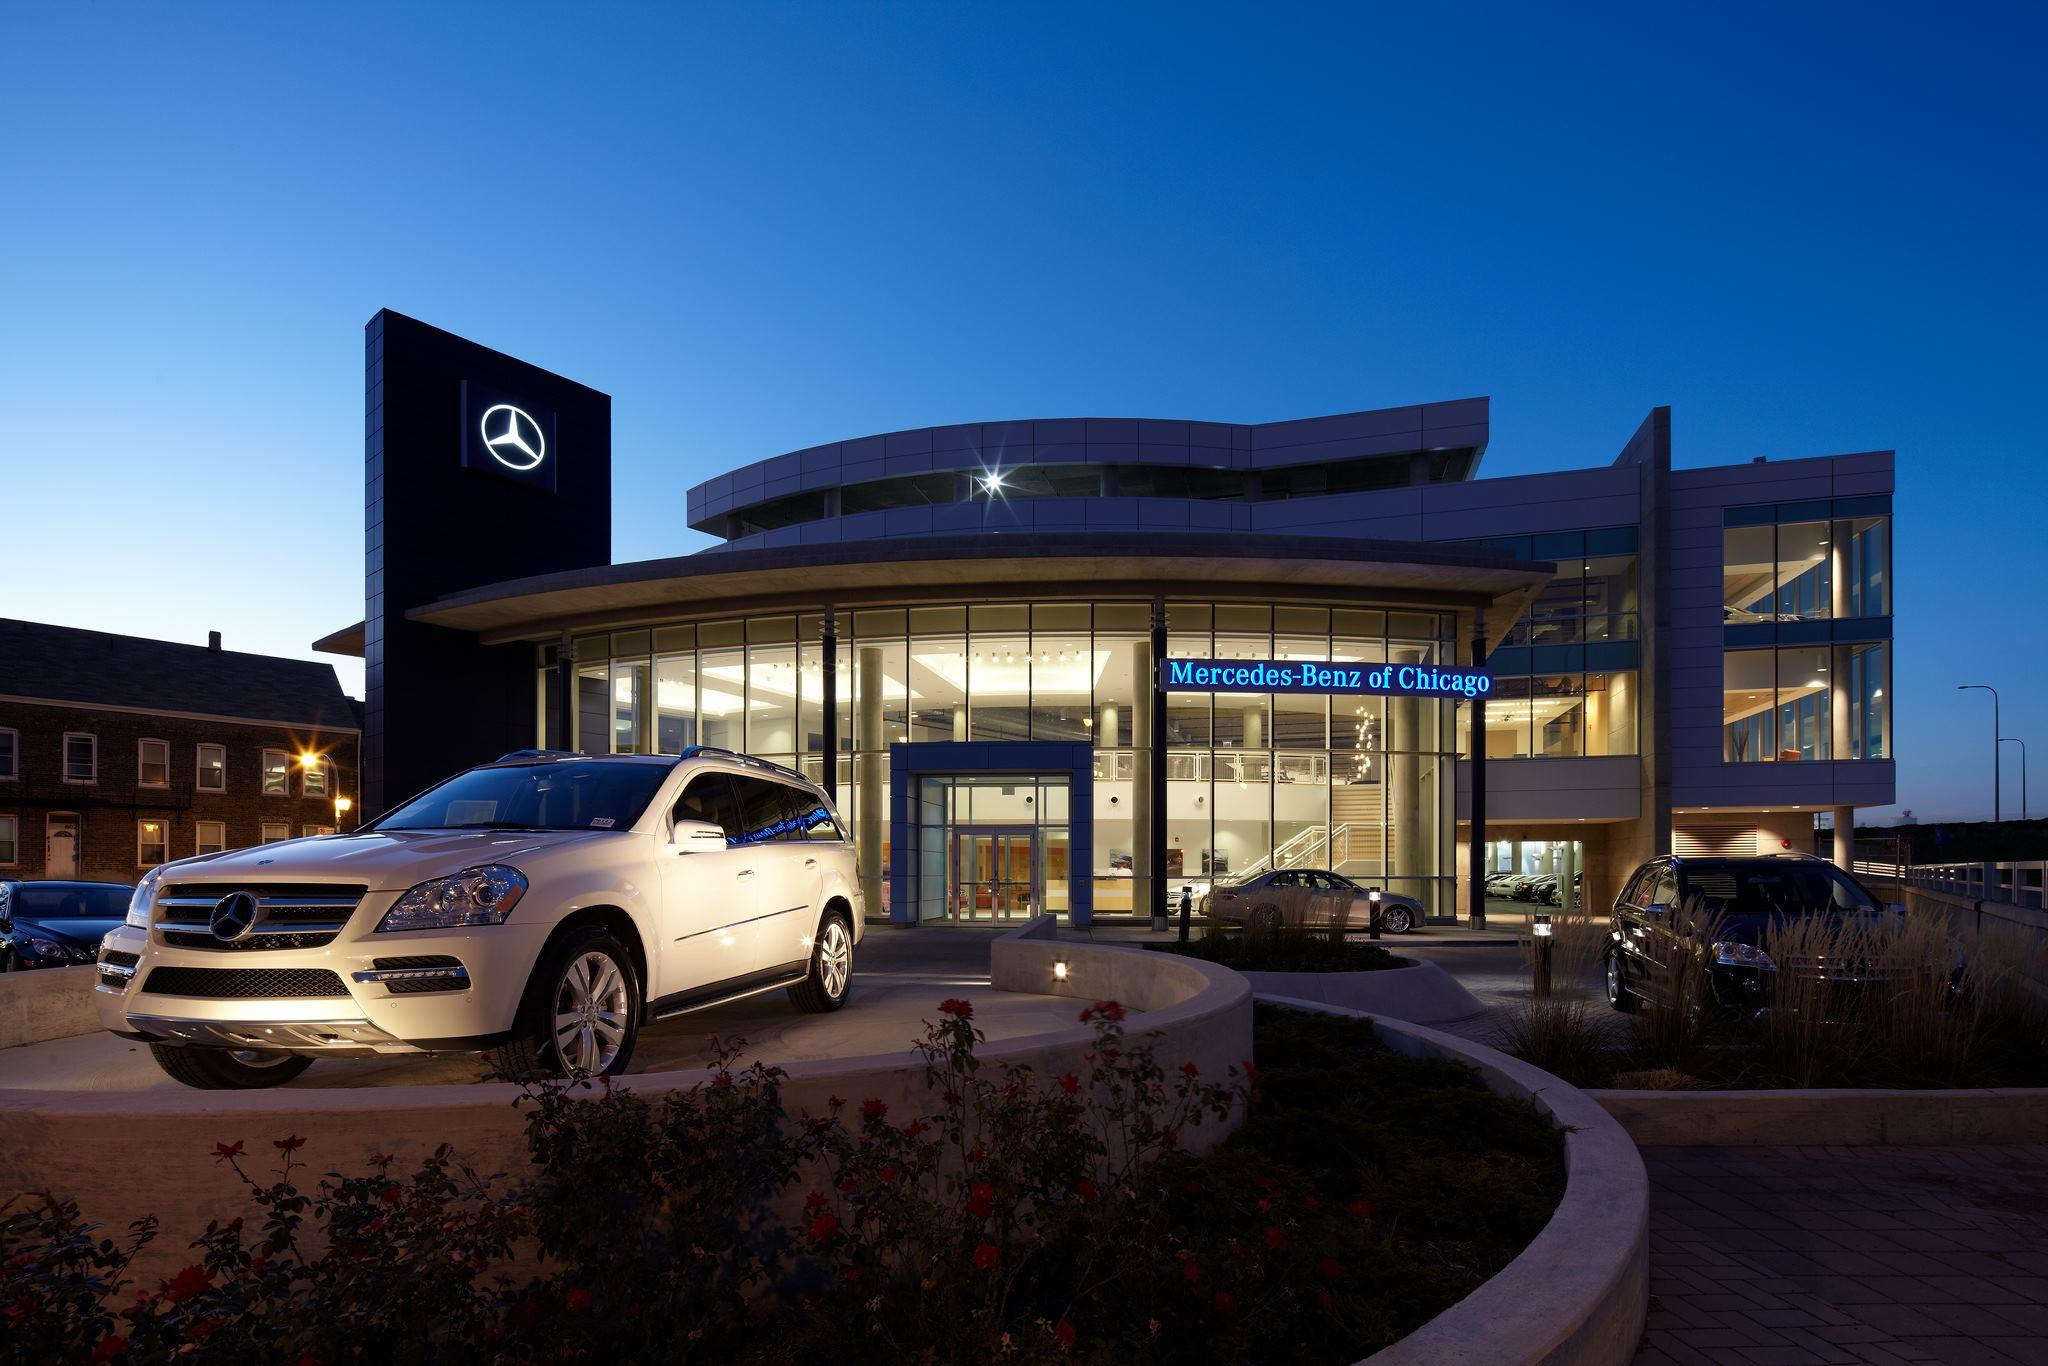 Mercedes benz of chicago in chicago il 60642 for Mercedes benz hours of operation